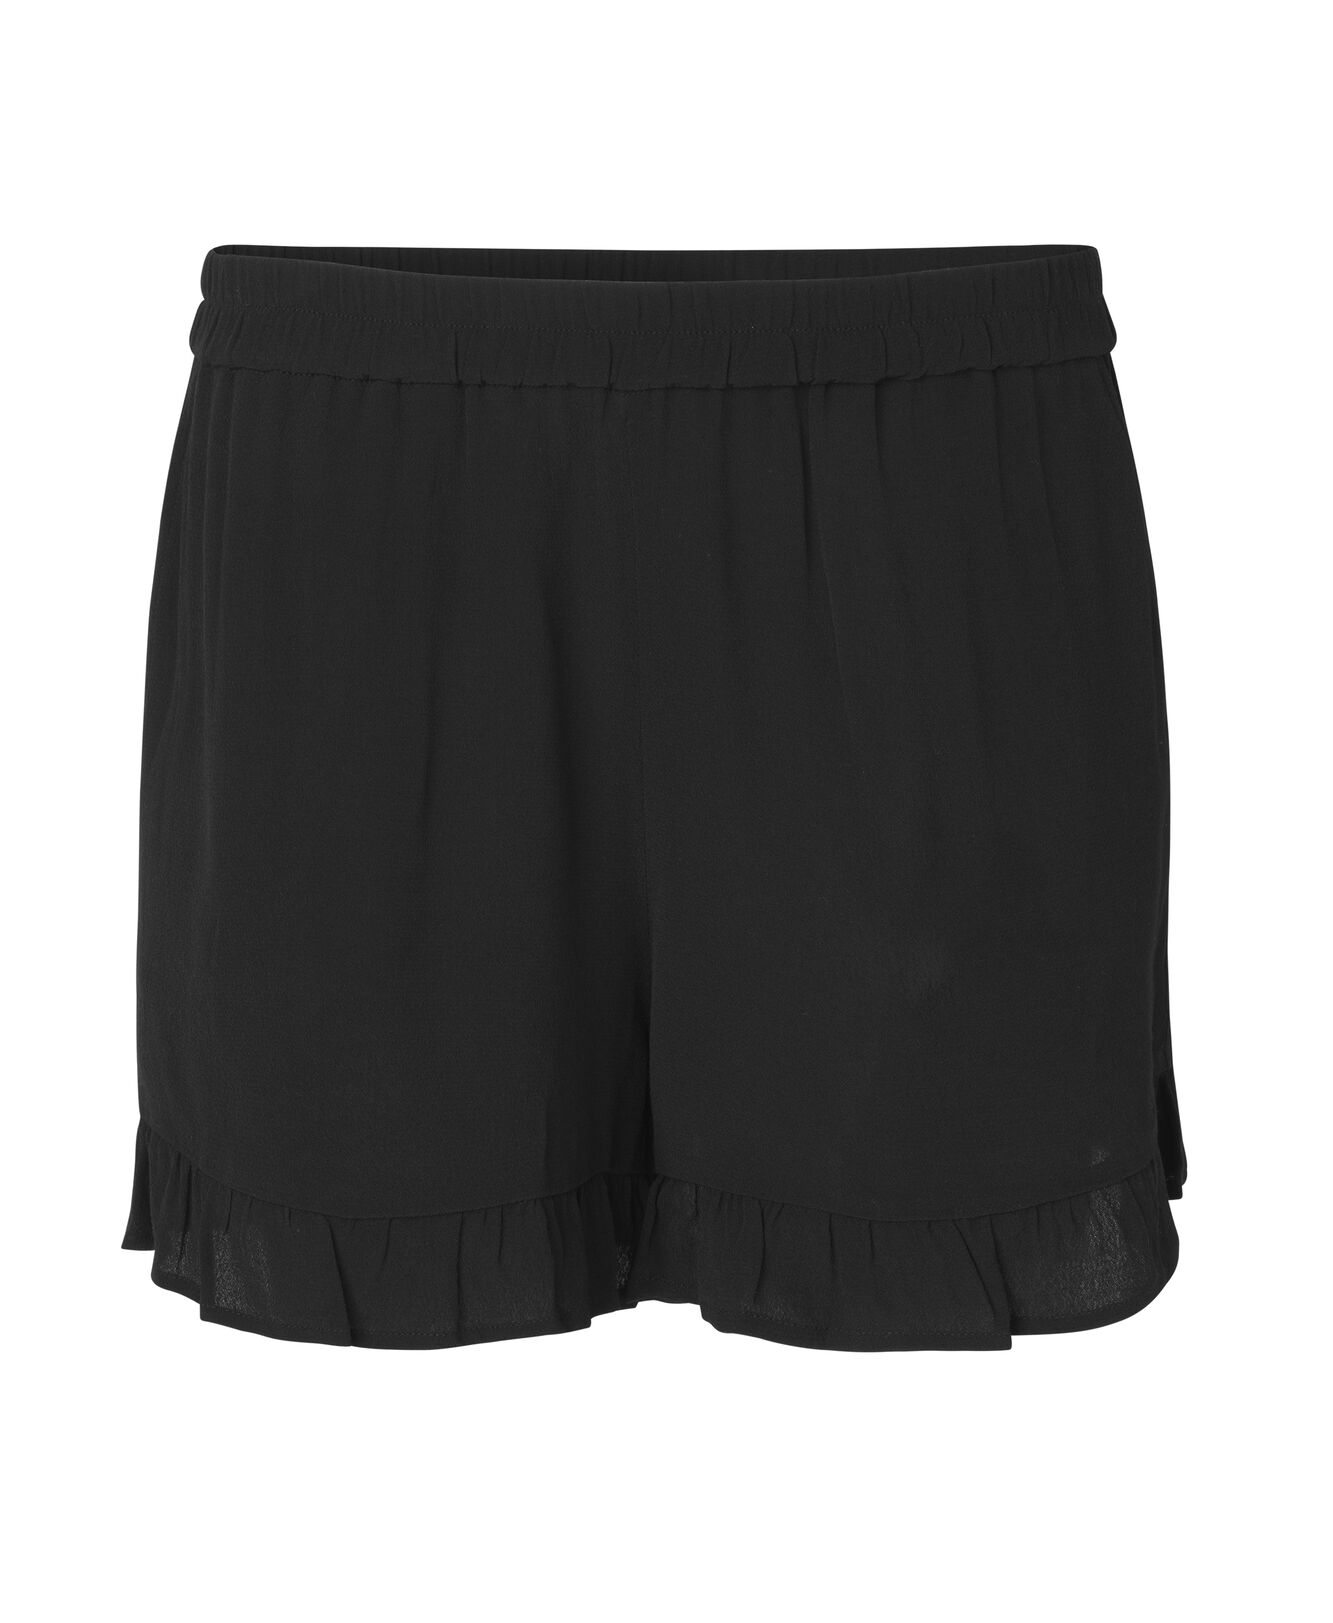 ENALOHA SHORTS 6257, BLACK